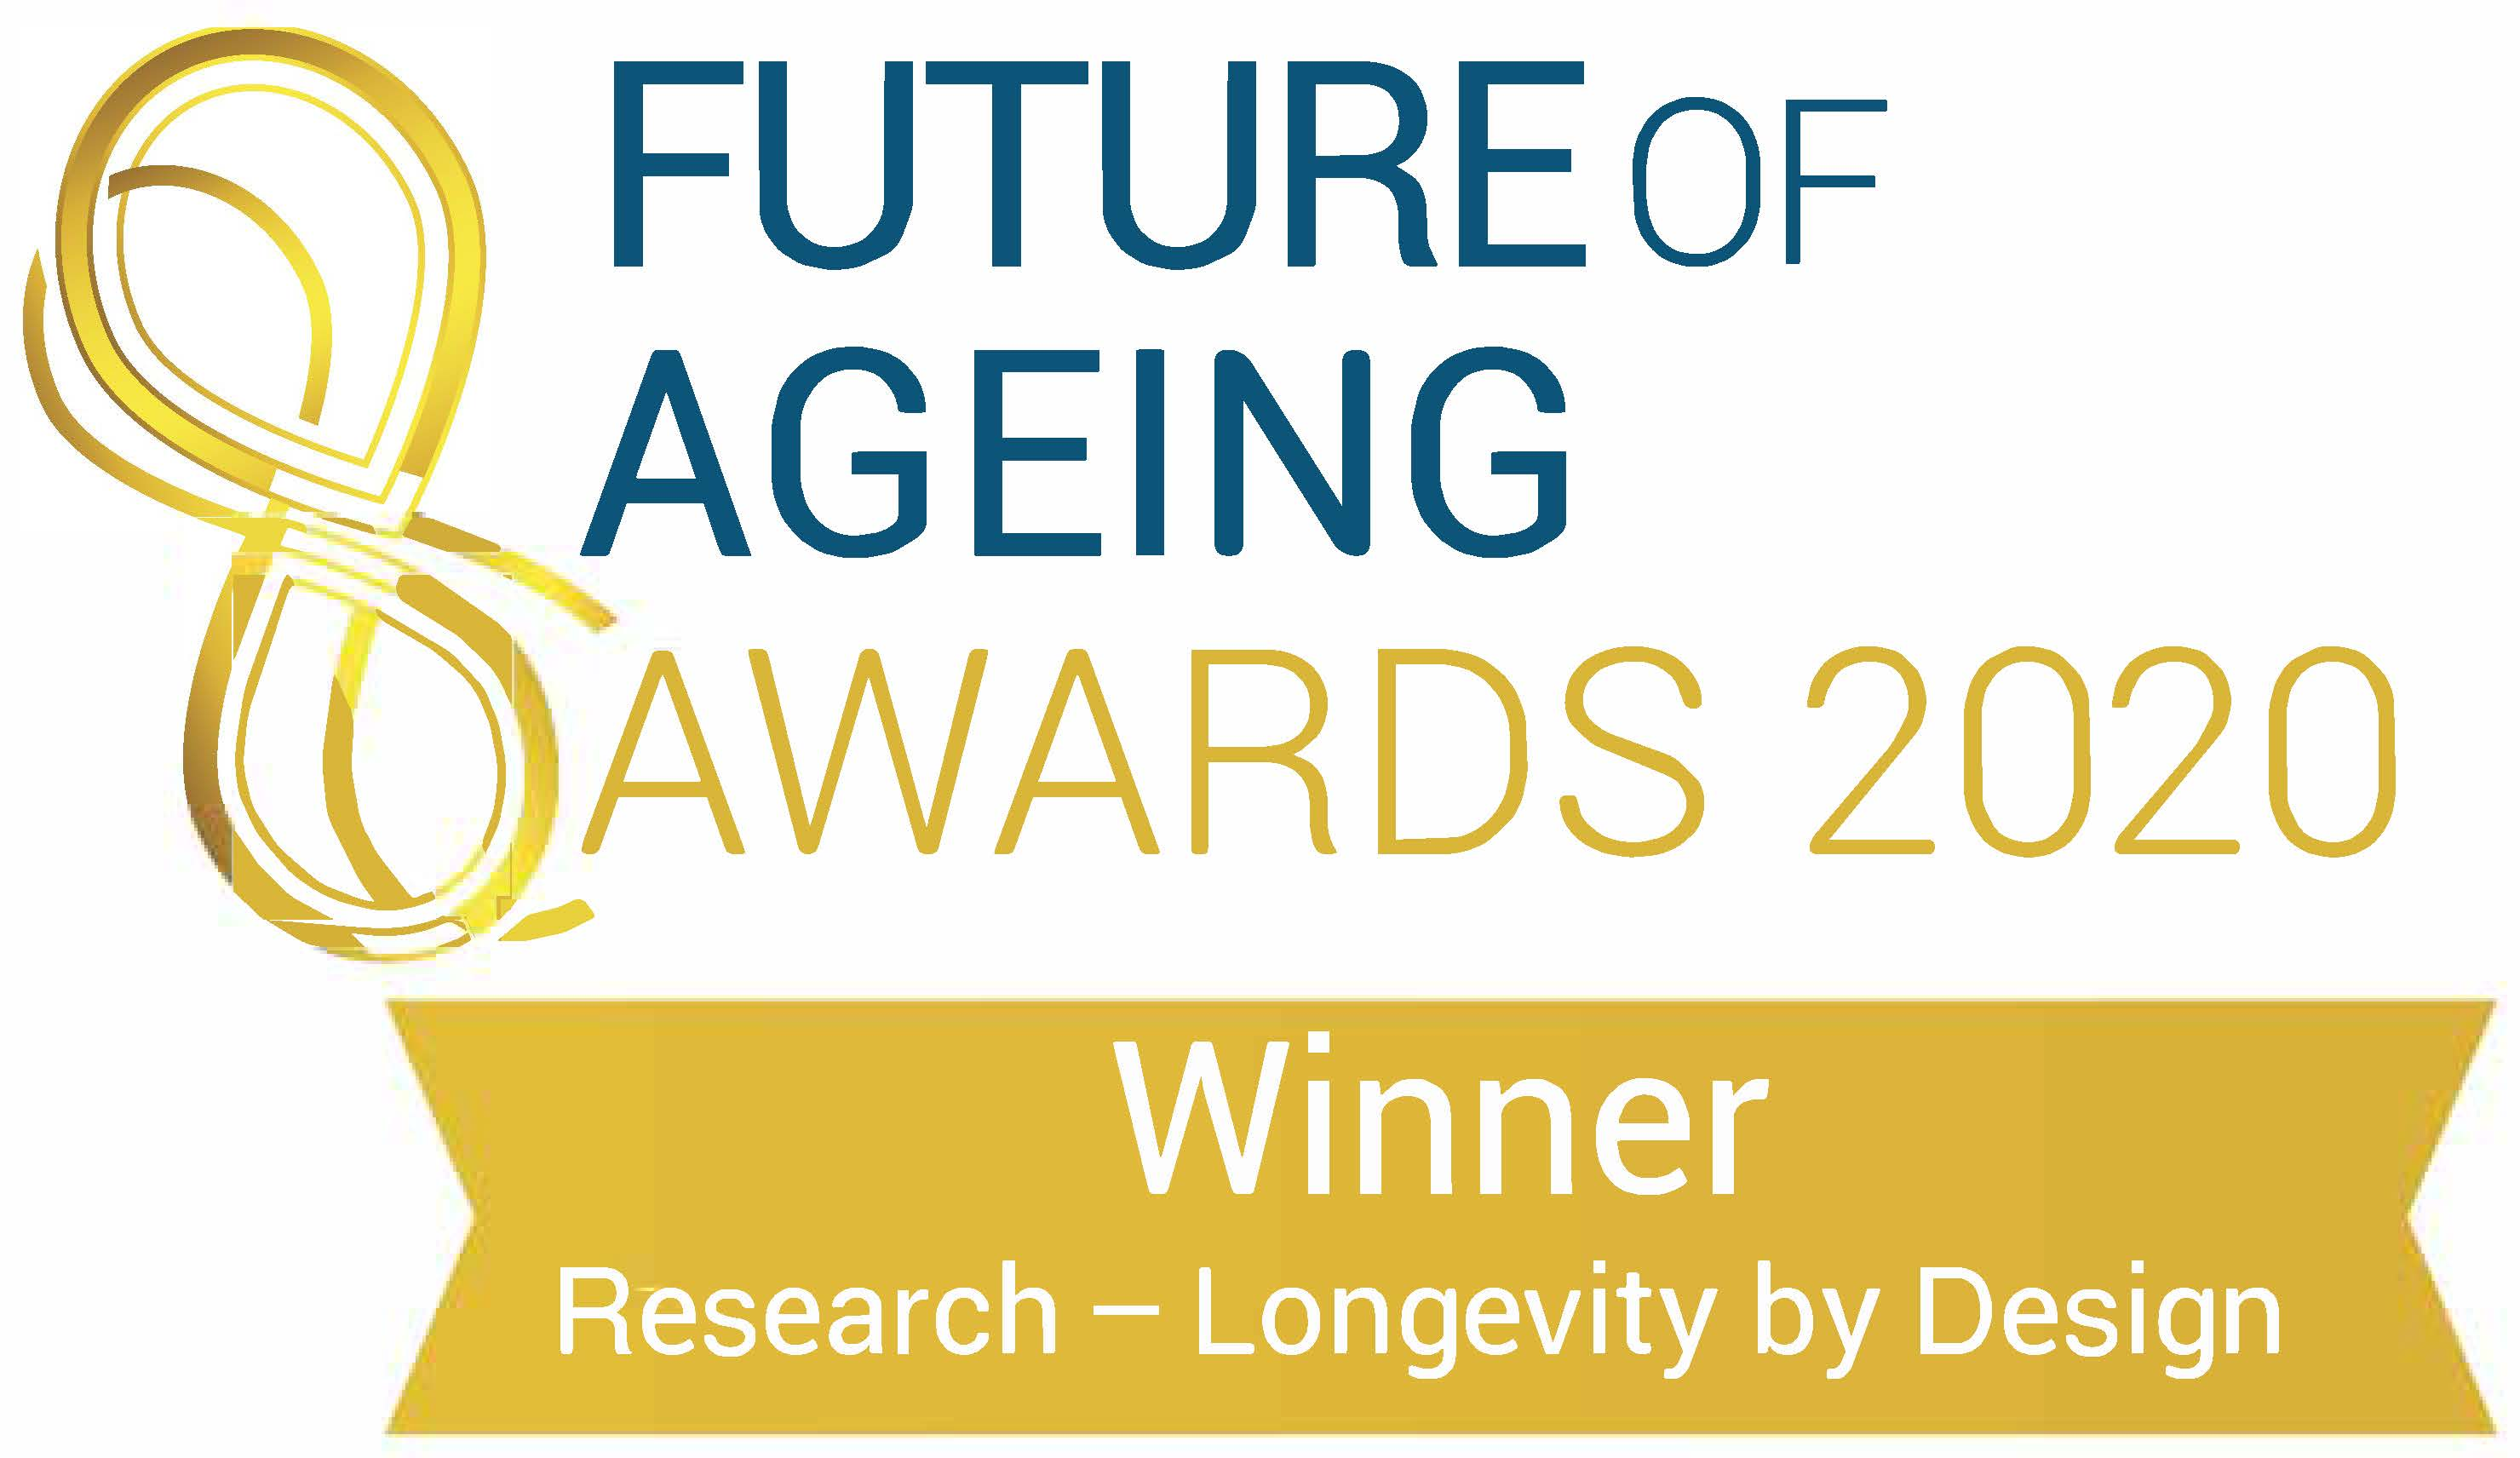 Future of Ageing Award 2020